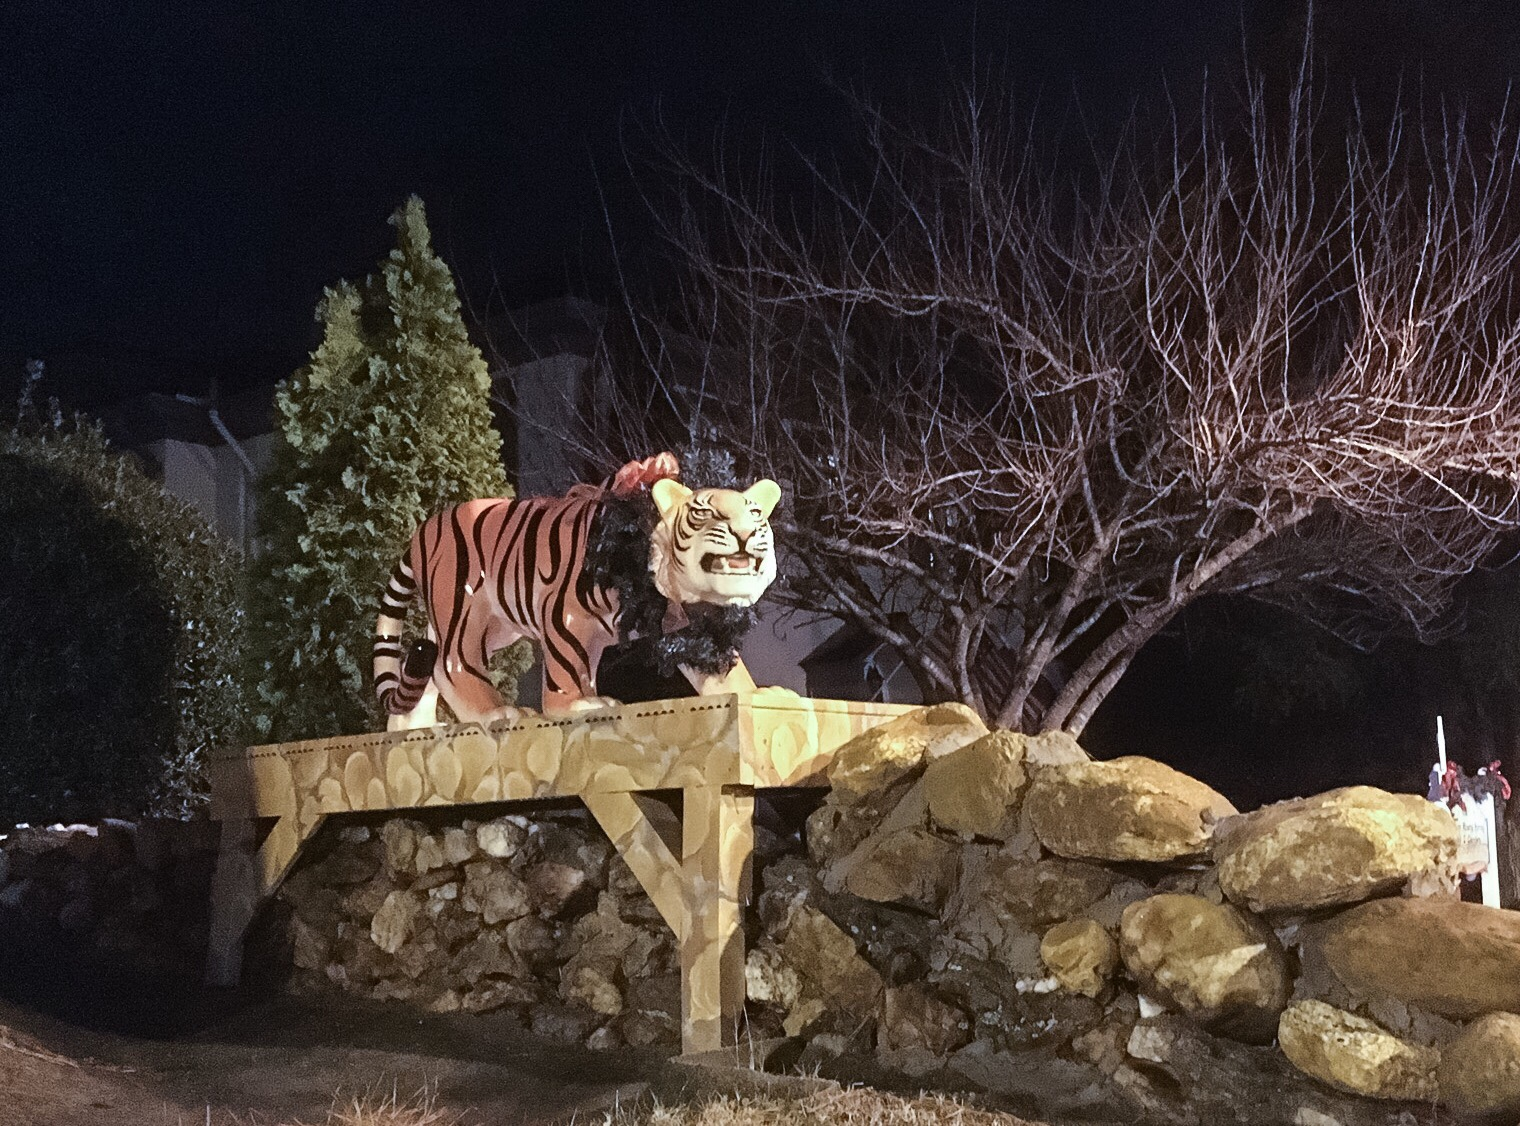 Photo of tiger sculpture from our trip last year.